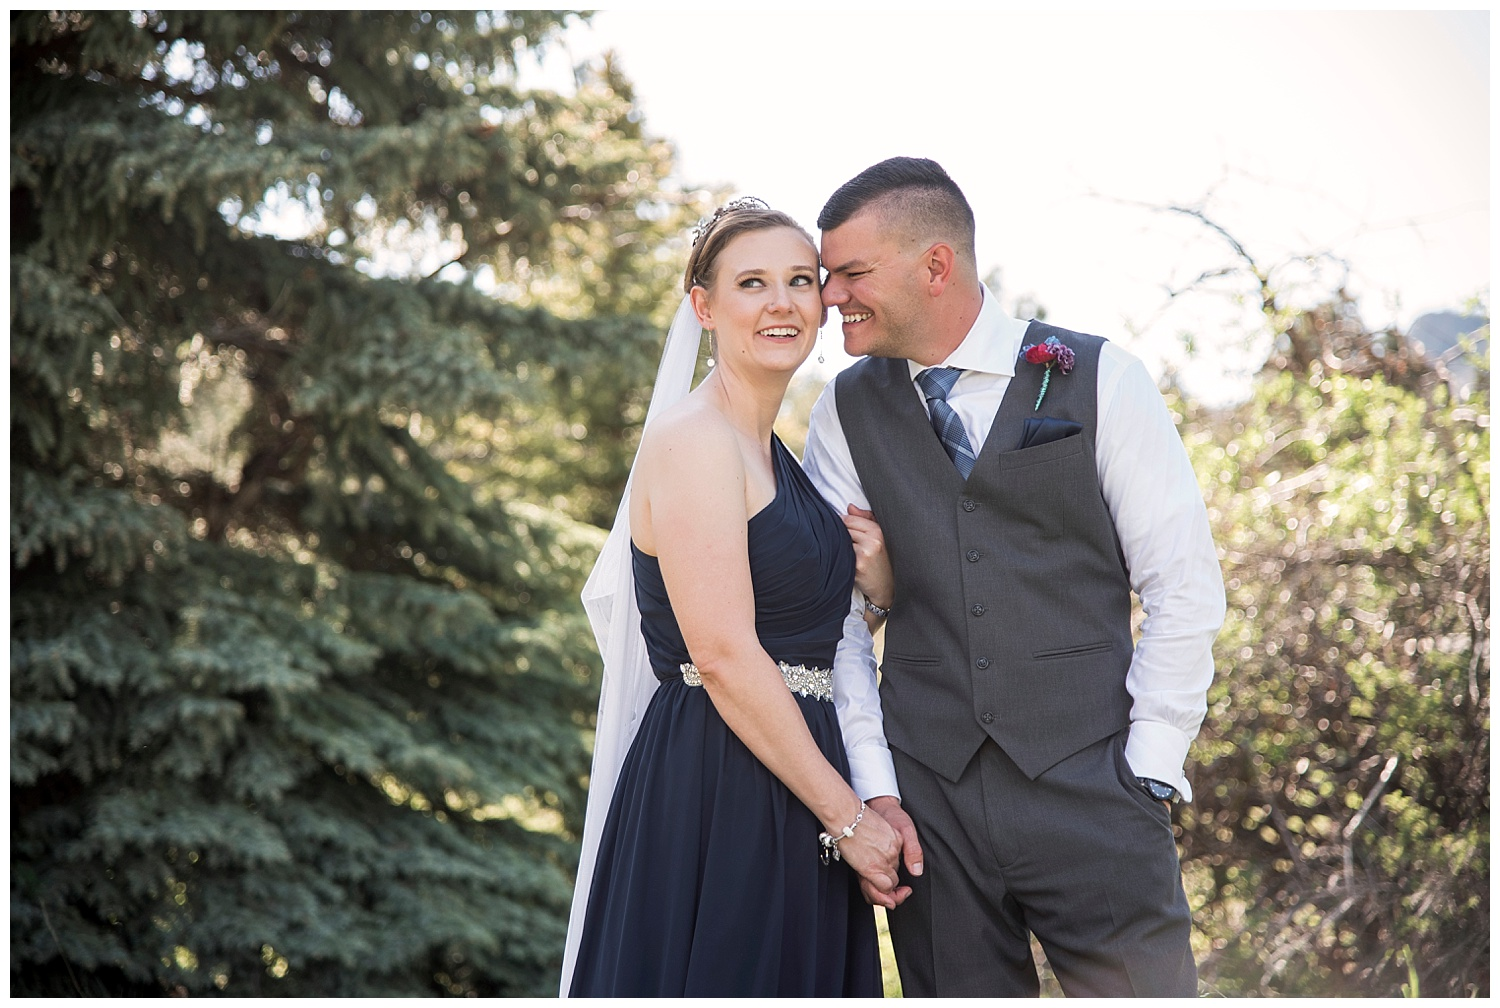 Adventure_Colorado_Wedding_Photographer_Intimate_Weddings_Photography_040.jpg